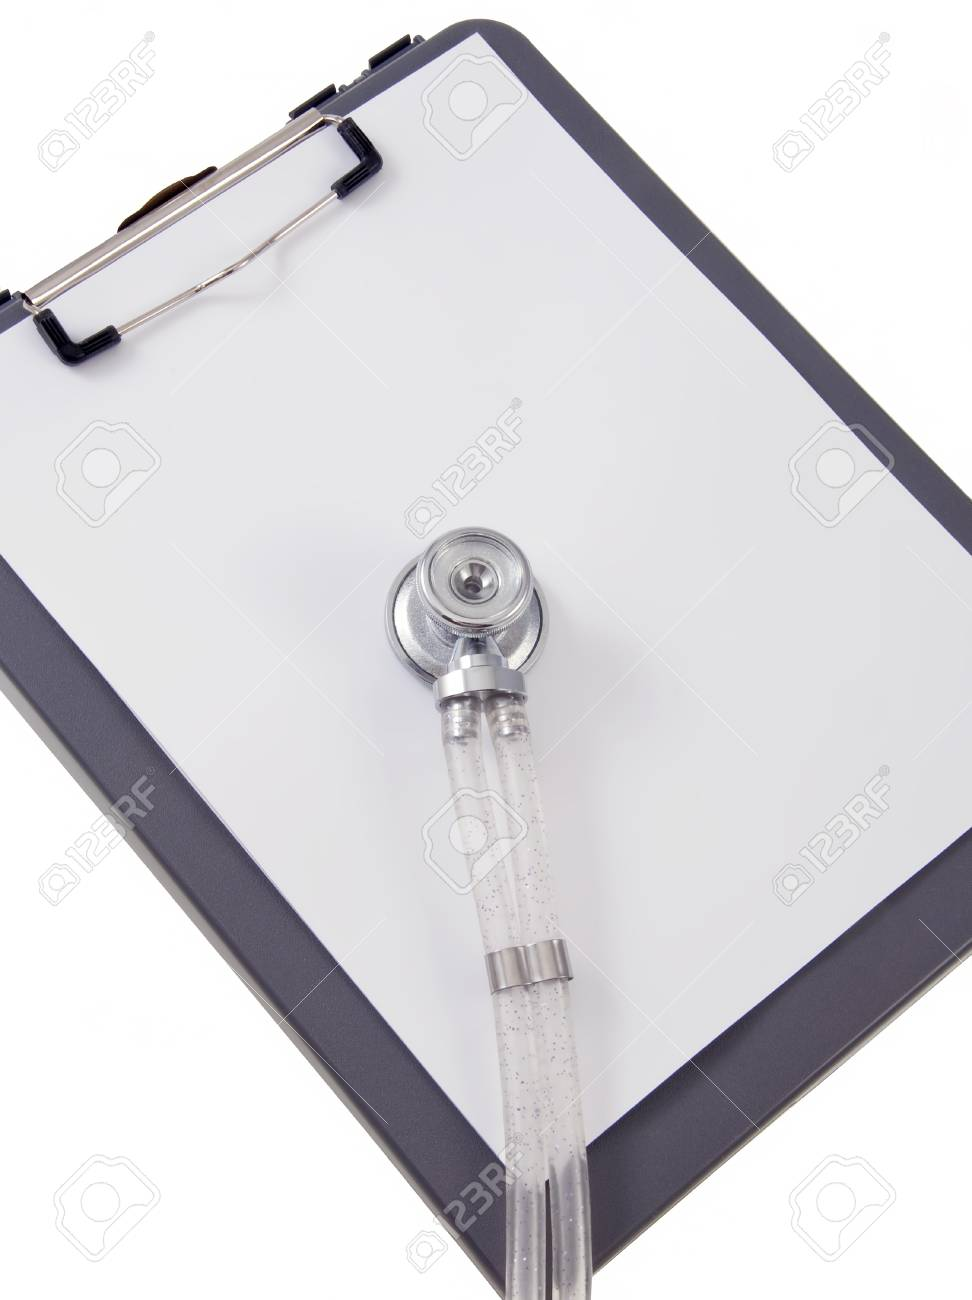 Blank Clip Board Paper and Stethoscope Stock Photo - 11464157